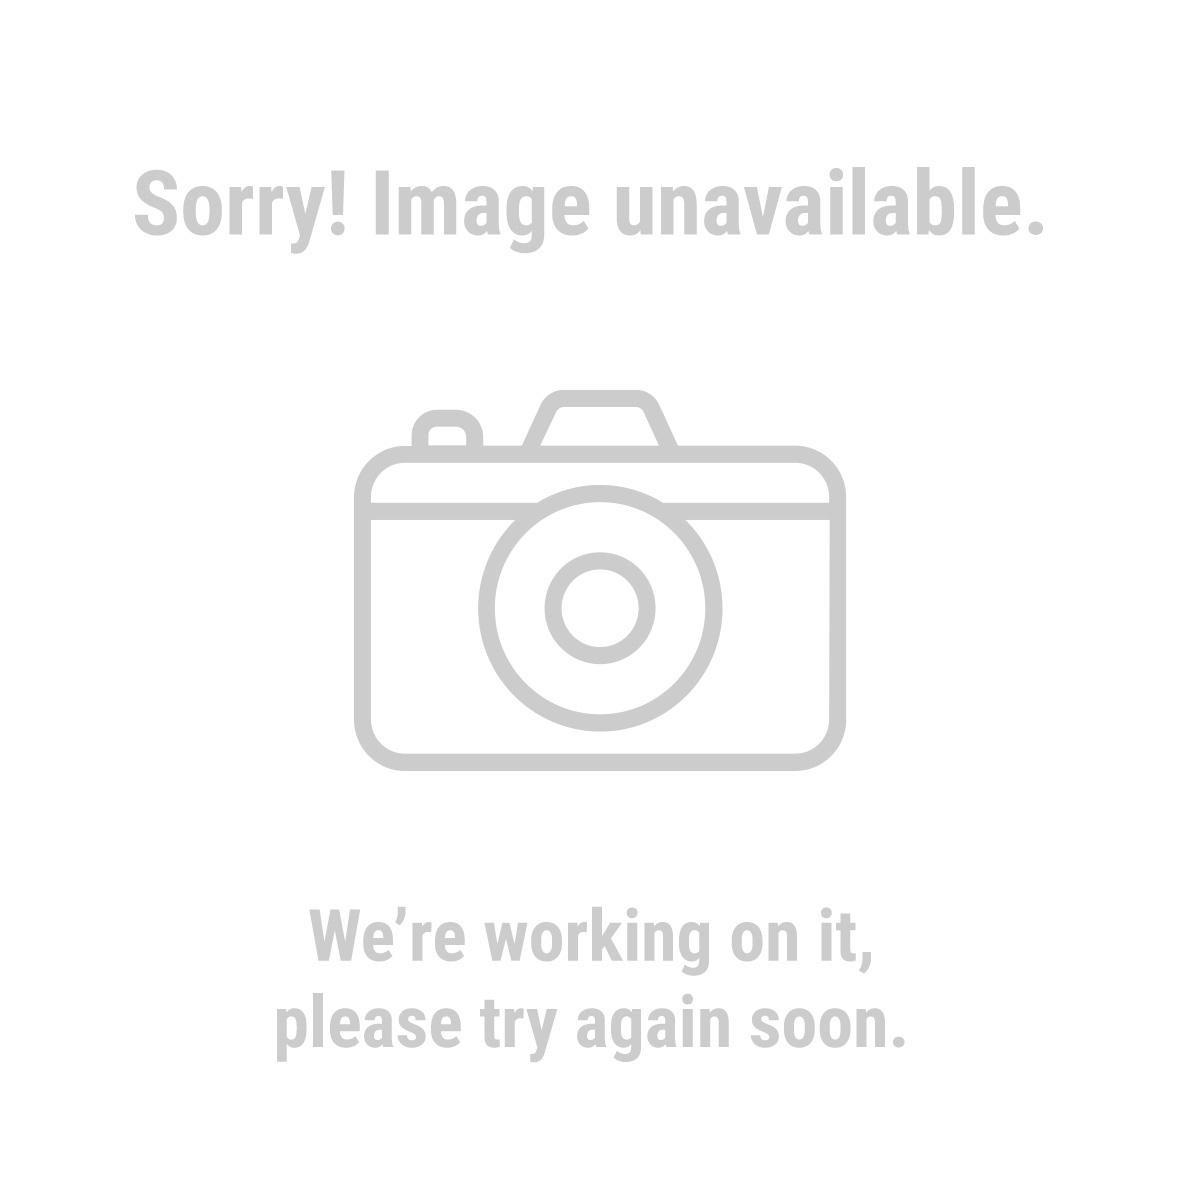 Central Pneumatic 93657 1/8 HP, 40 PSI Oilless Airbrush Compressor